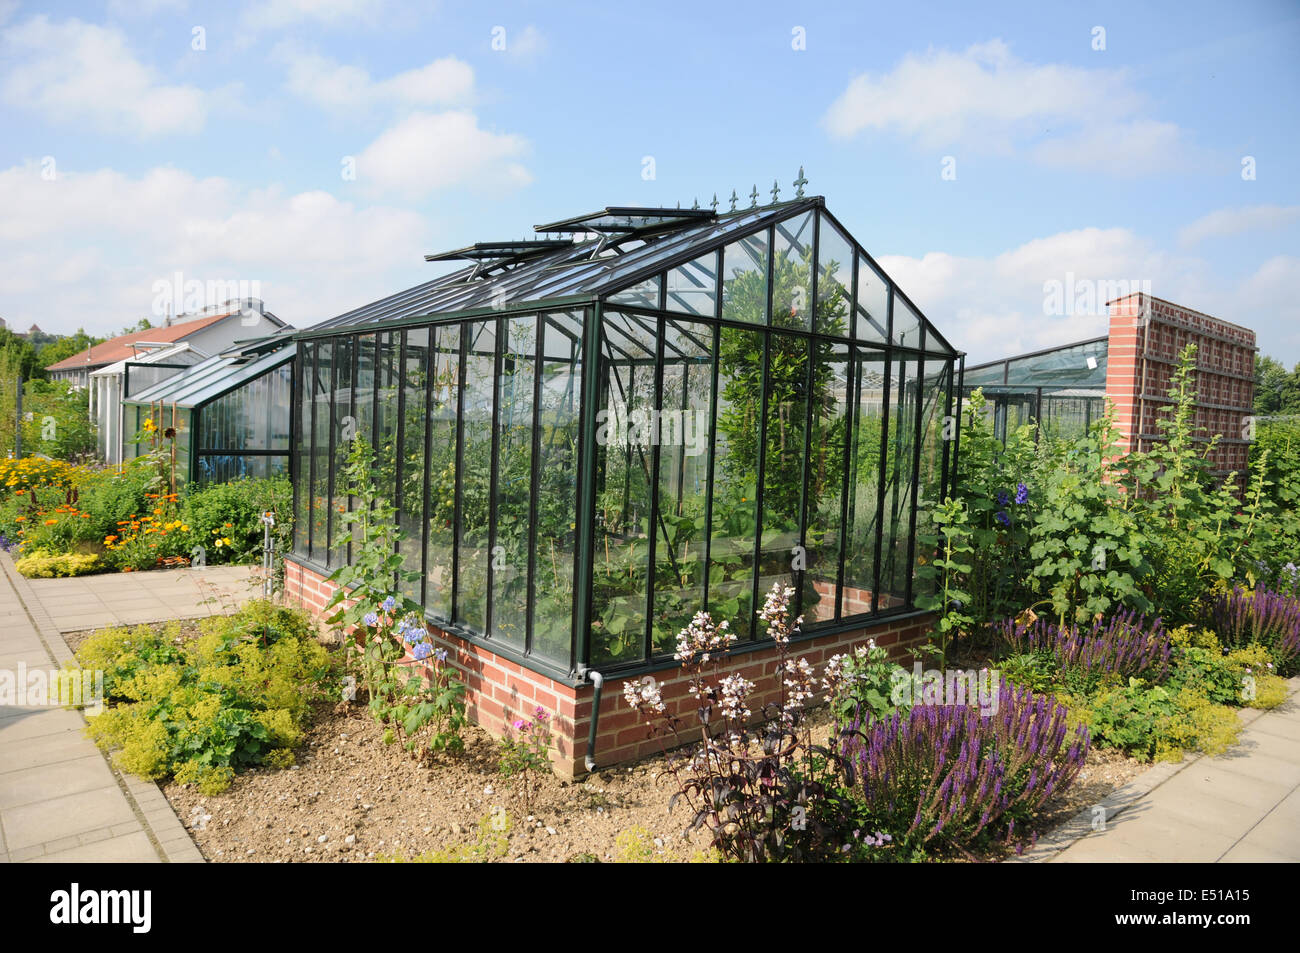 Greenhouse with glass-windows - Stock Image